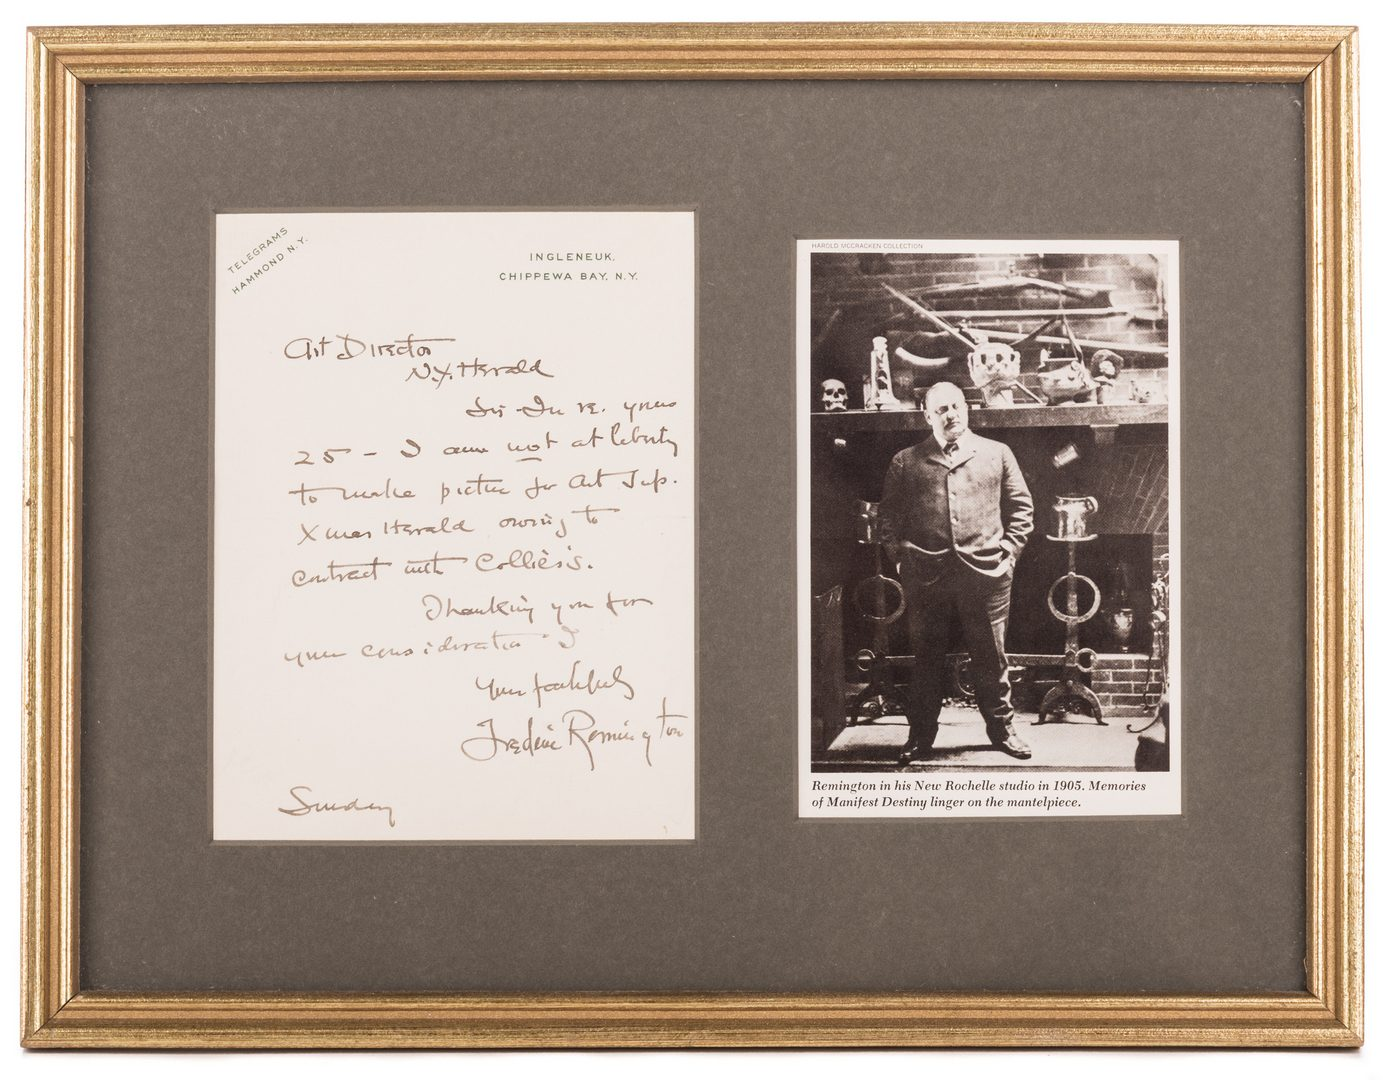 Lot 457: Frederic Remington Letter & Book, 2 items